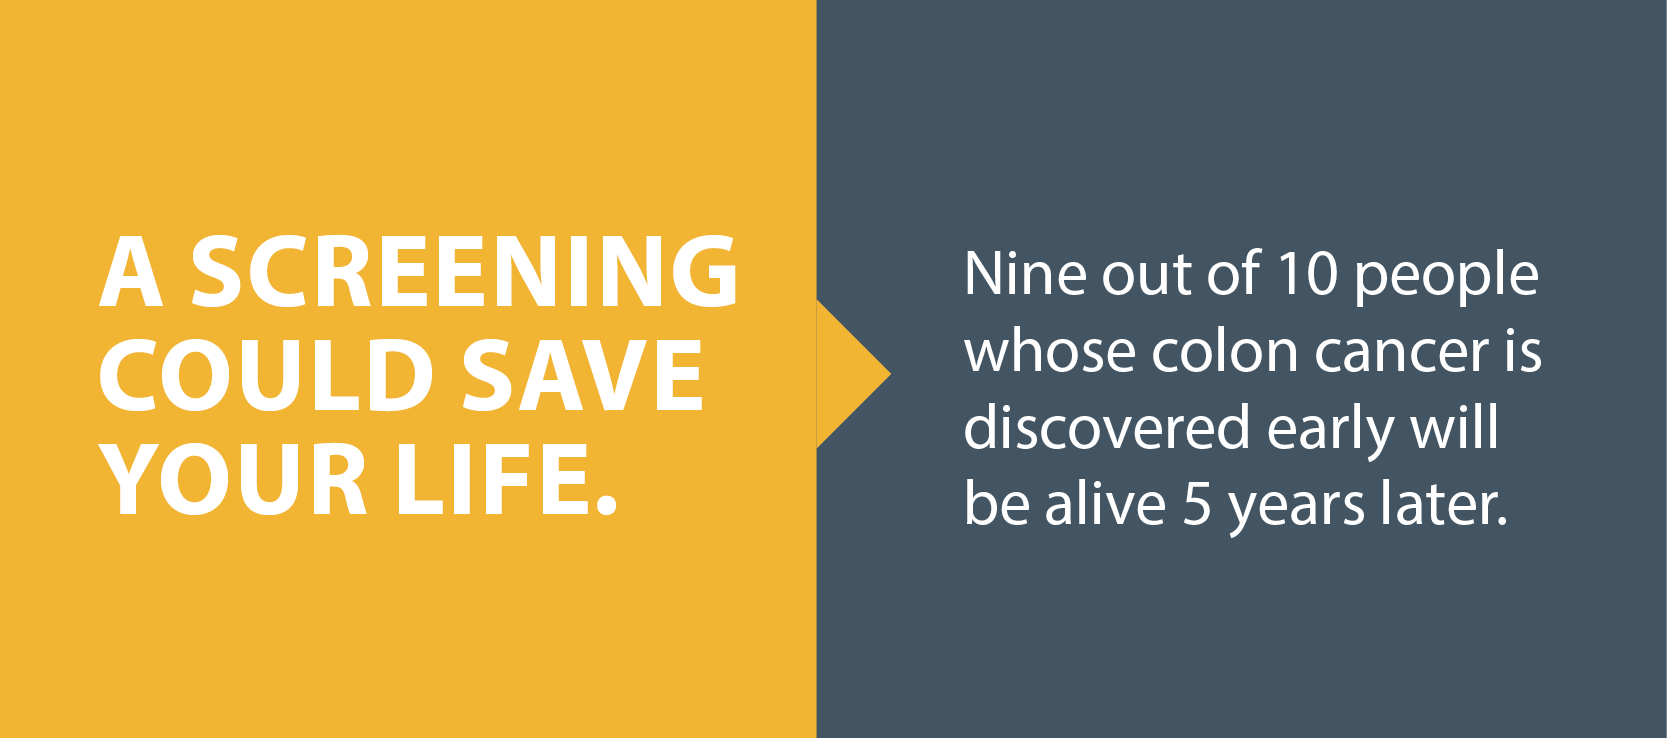 A colonoscopy can save your life.